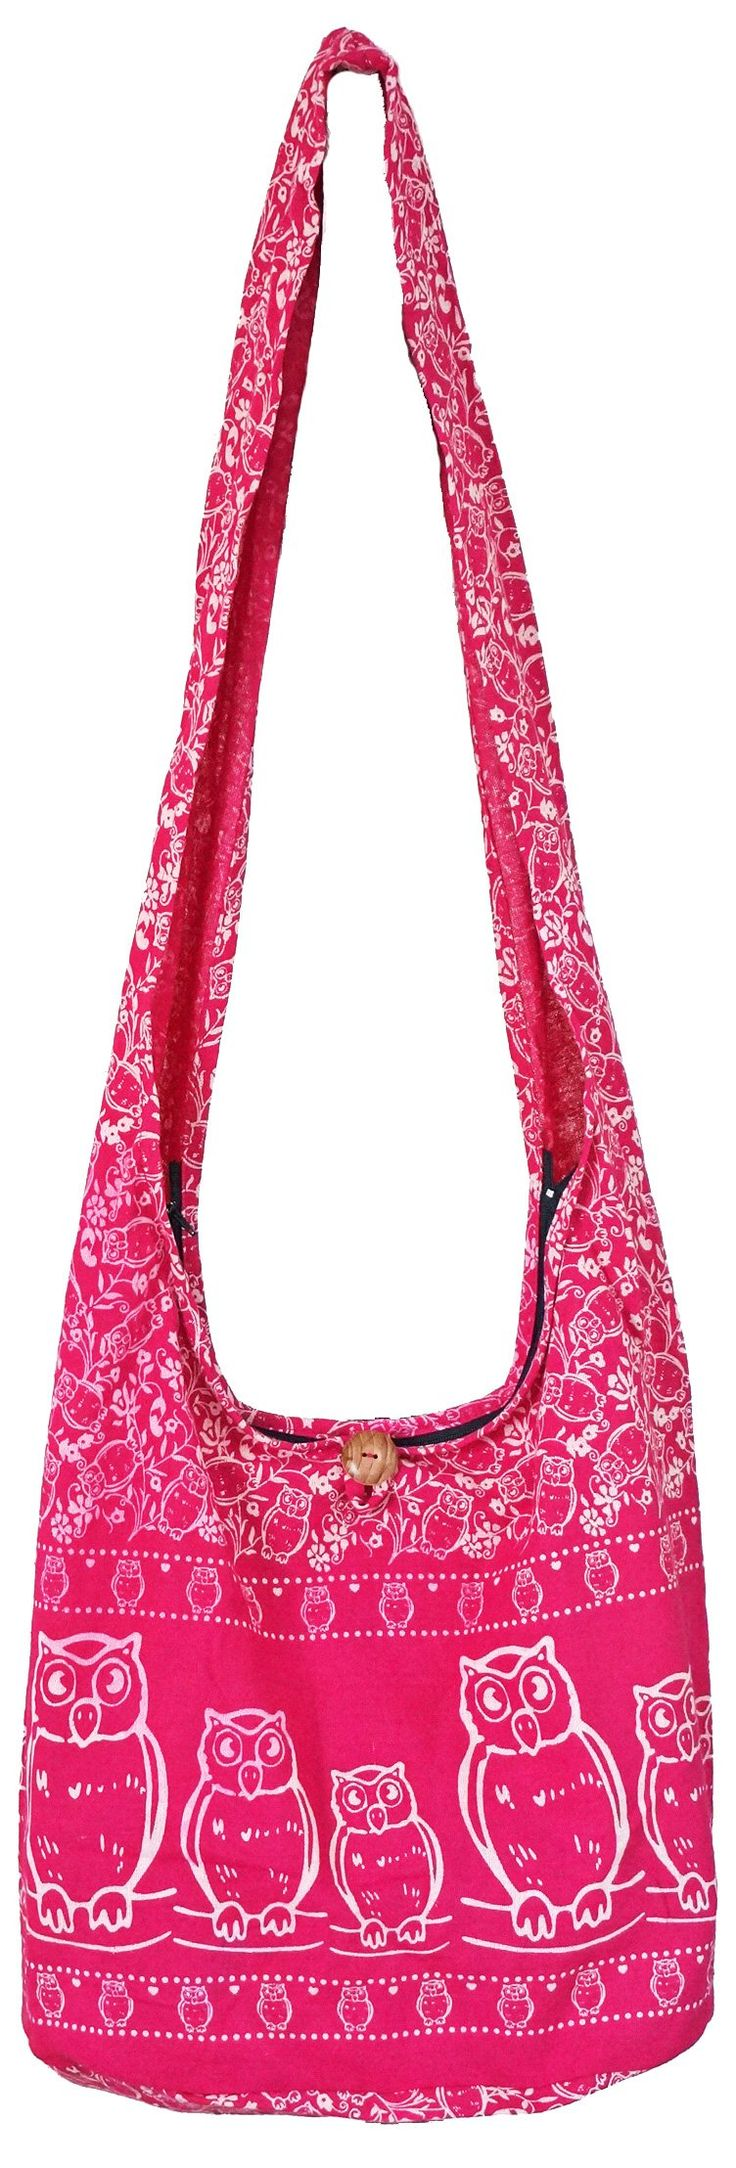 """Artiwa Hippie Sling Crossbody Shoulder Bag and Purse for Women Zipper Owl Print Fuchsia Pink Large. Fuchsia Pink color. Cute and Unique Owls Design. Zippered Top Closure assures the security of your personal belongings with inside pockets for sort and separation. Height : 14"""" Width : 16"""" Depth : 8 """" Length of Strap: 42"""" Width of Strap: 5"""". Only avaialble at Artiwa sotre. Beware of Counterfeit Artiwa Products. Fake products do not represent Artiwa's high standards for design, materials or..."""